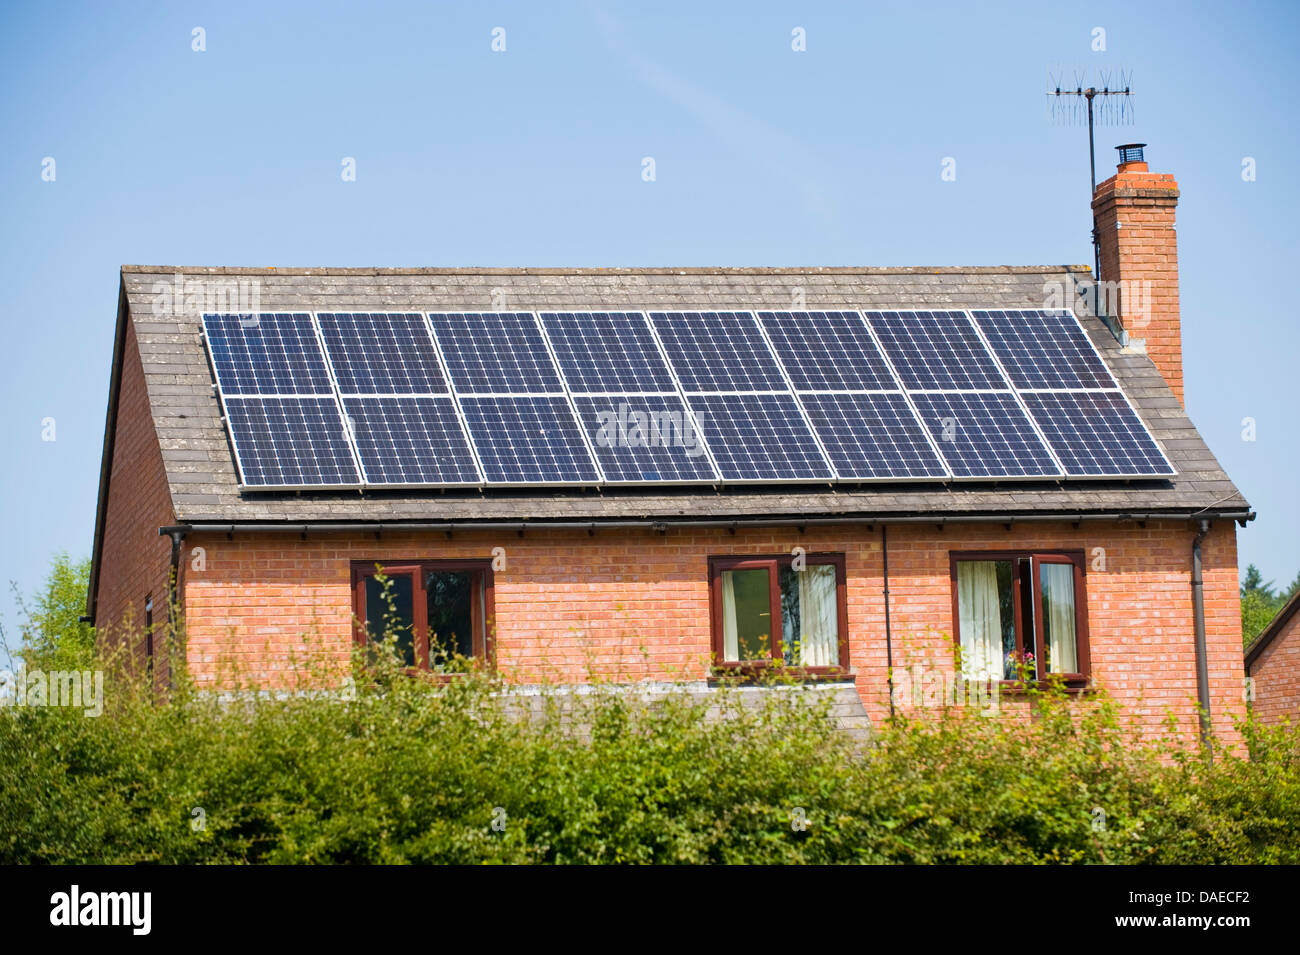 Solar panels on roof of modern detached house in rural village of Boughrood Powys Mid Wales UK - Stock Image